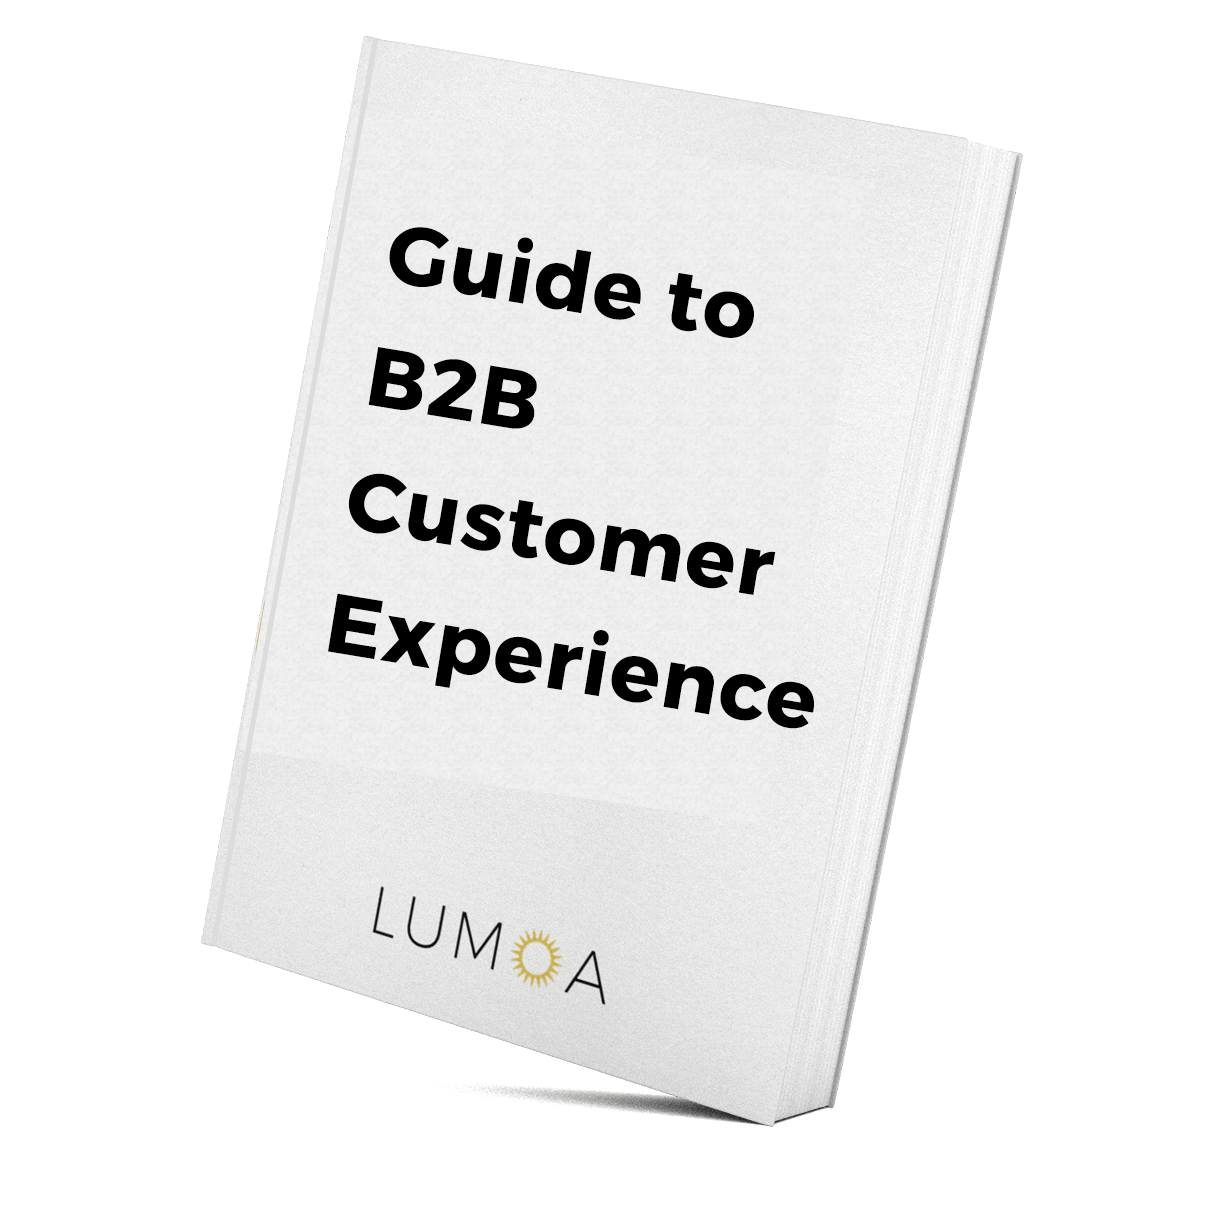 book_Guide to b2b customer experience.png